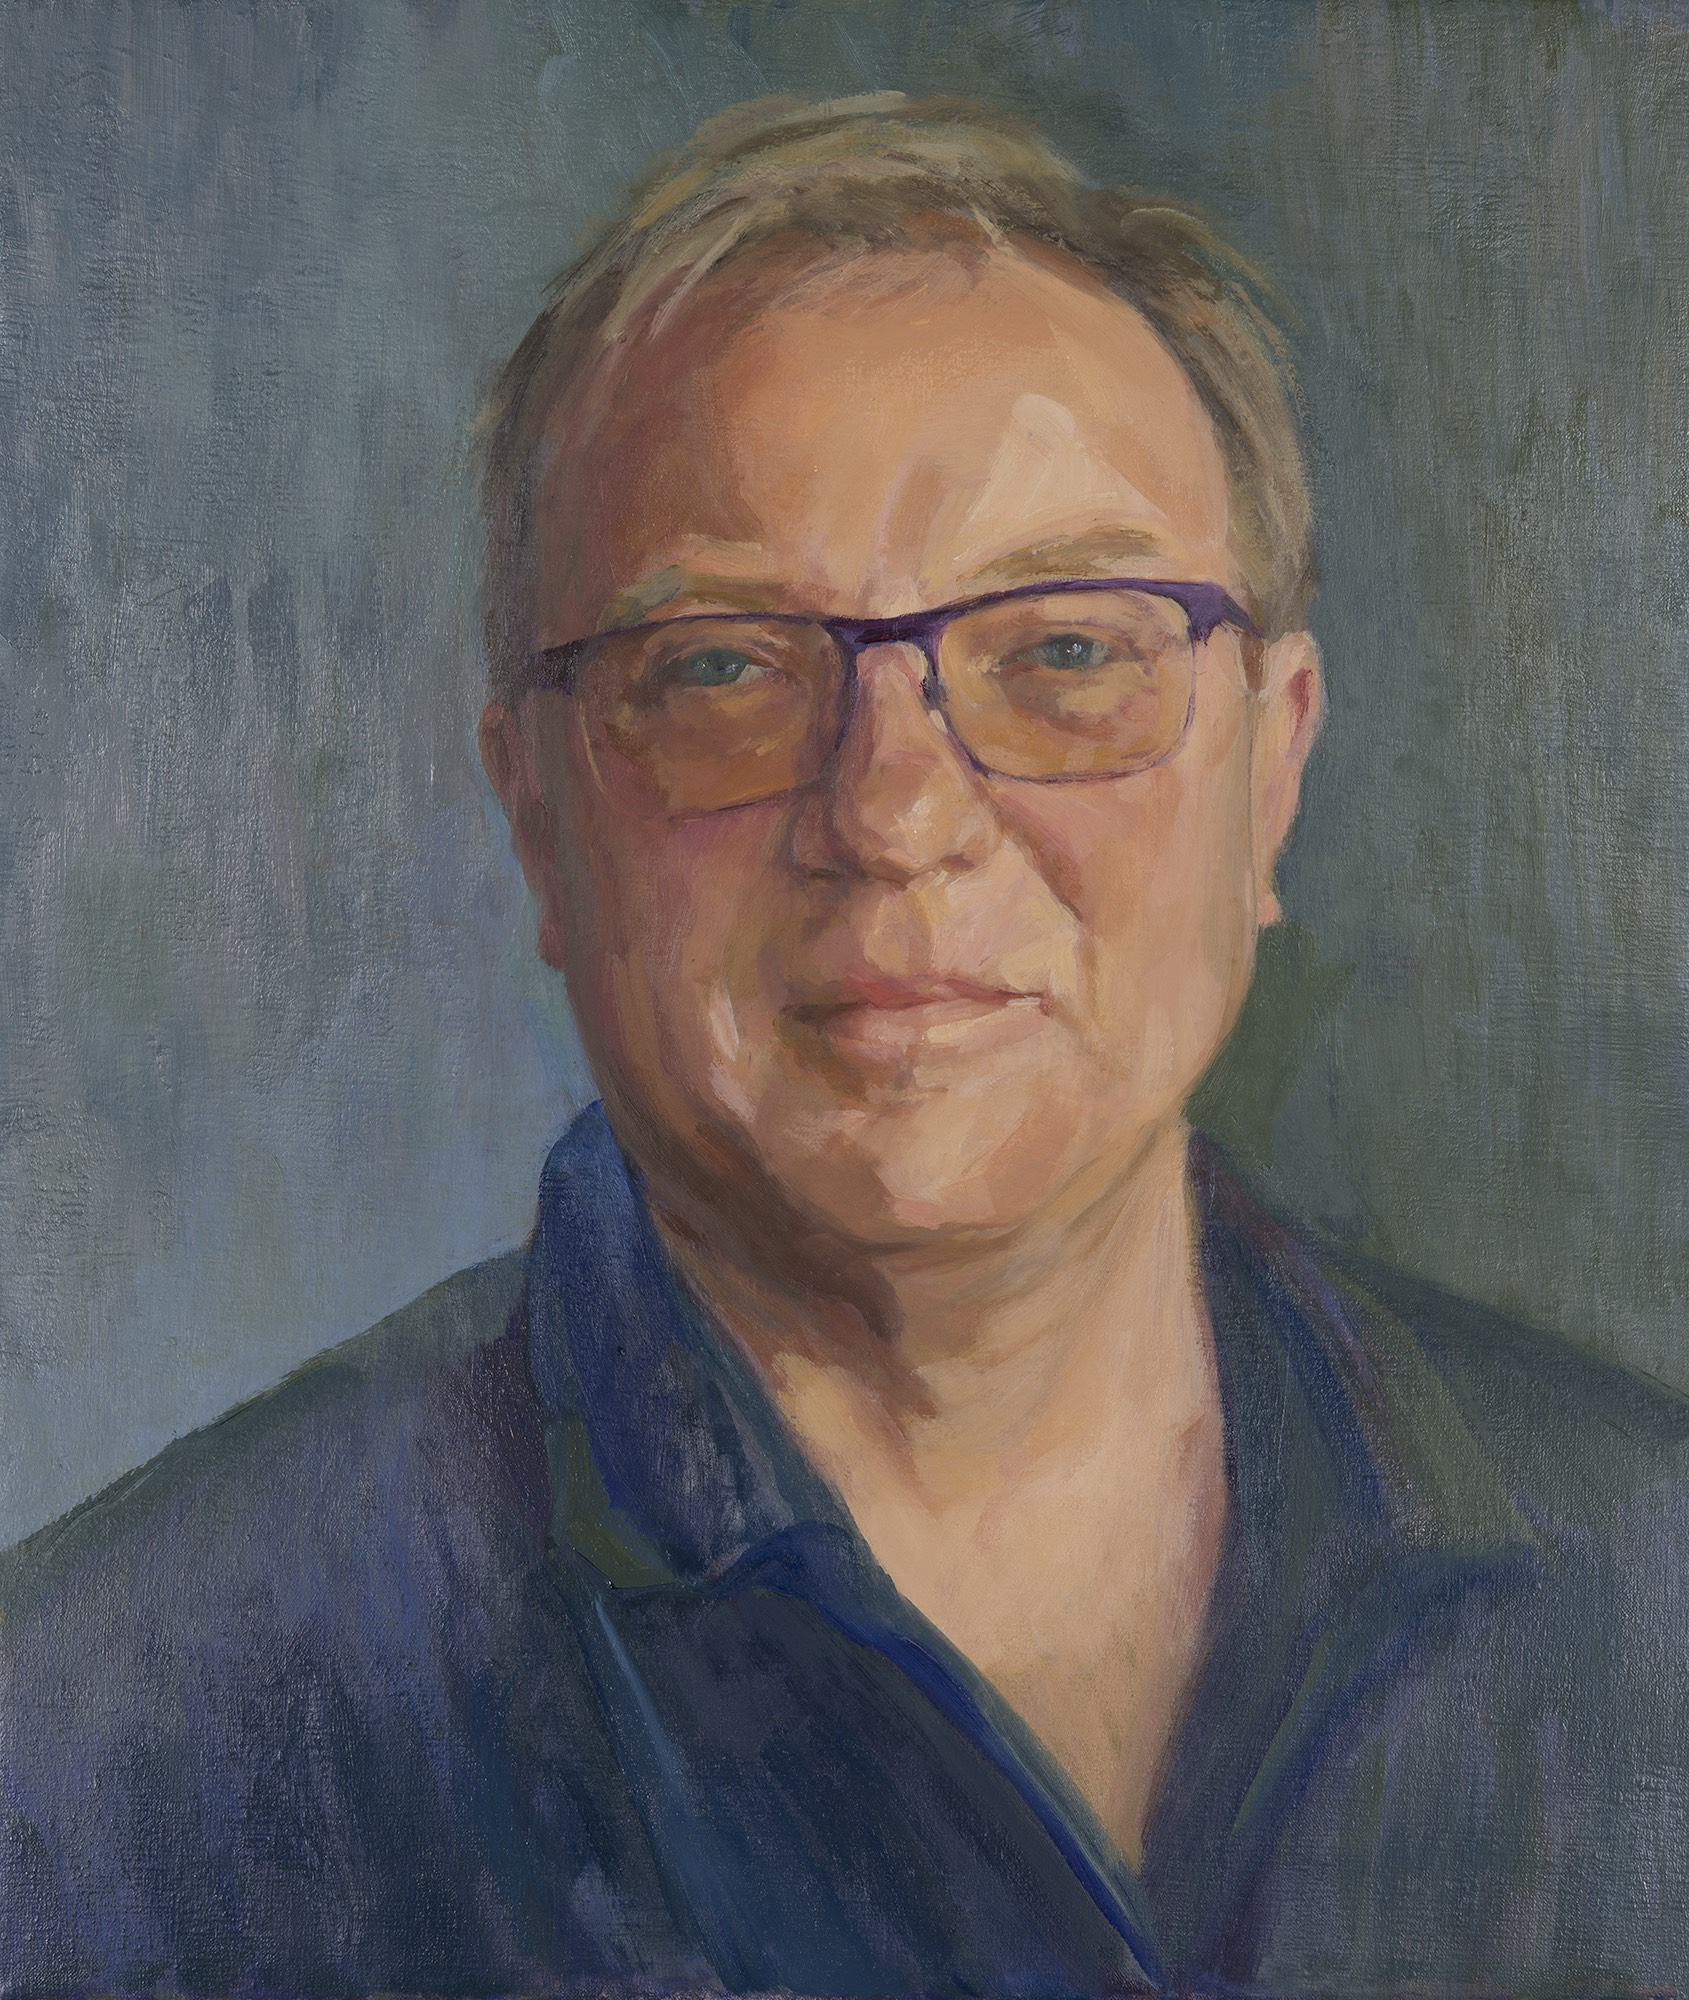 Piers Russell-Cobb, publisher